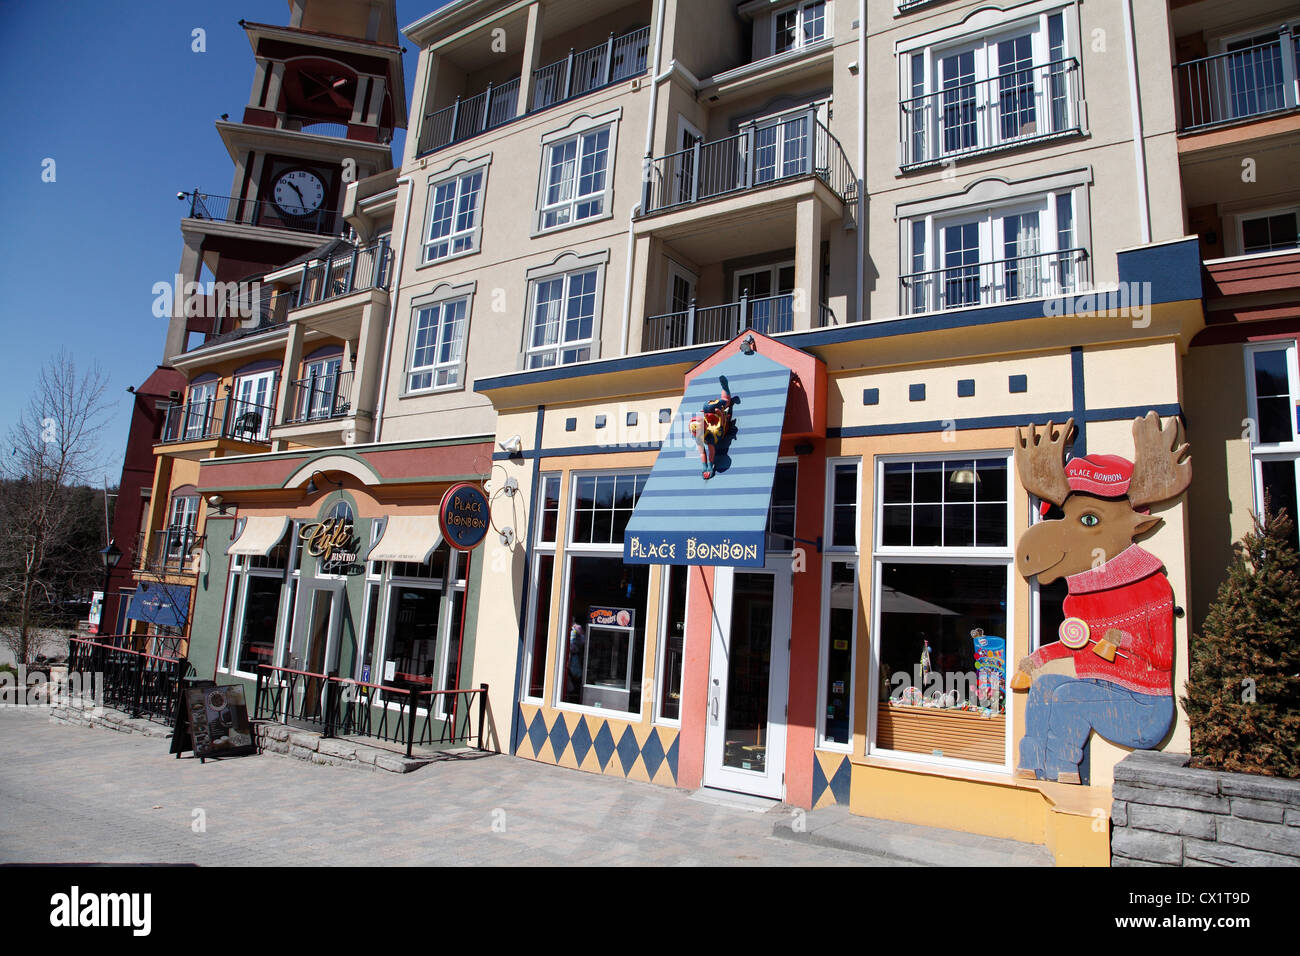 Retail Stores In Mont Tremblant Ski Village A Winter Ski Resort In The Laurentian Mountains Quebec Canada - Stock Image